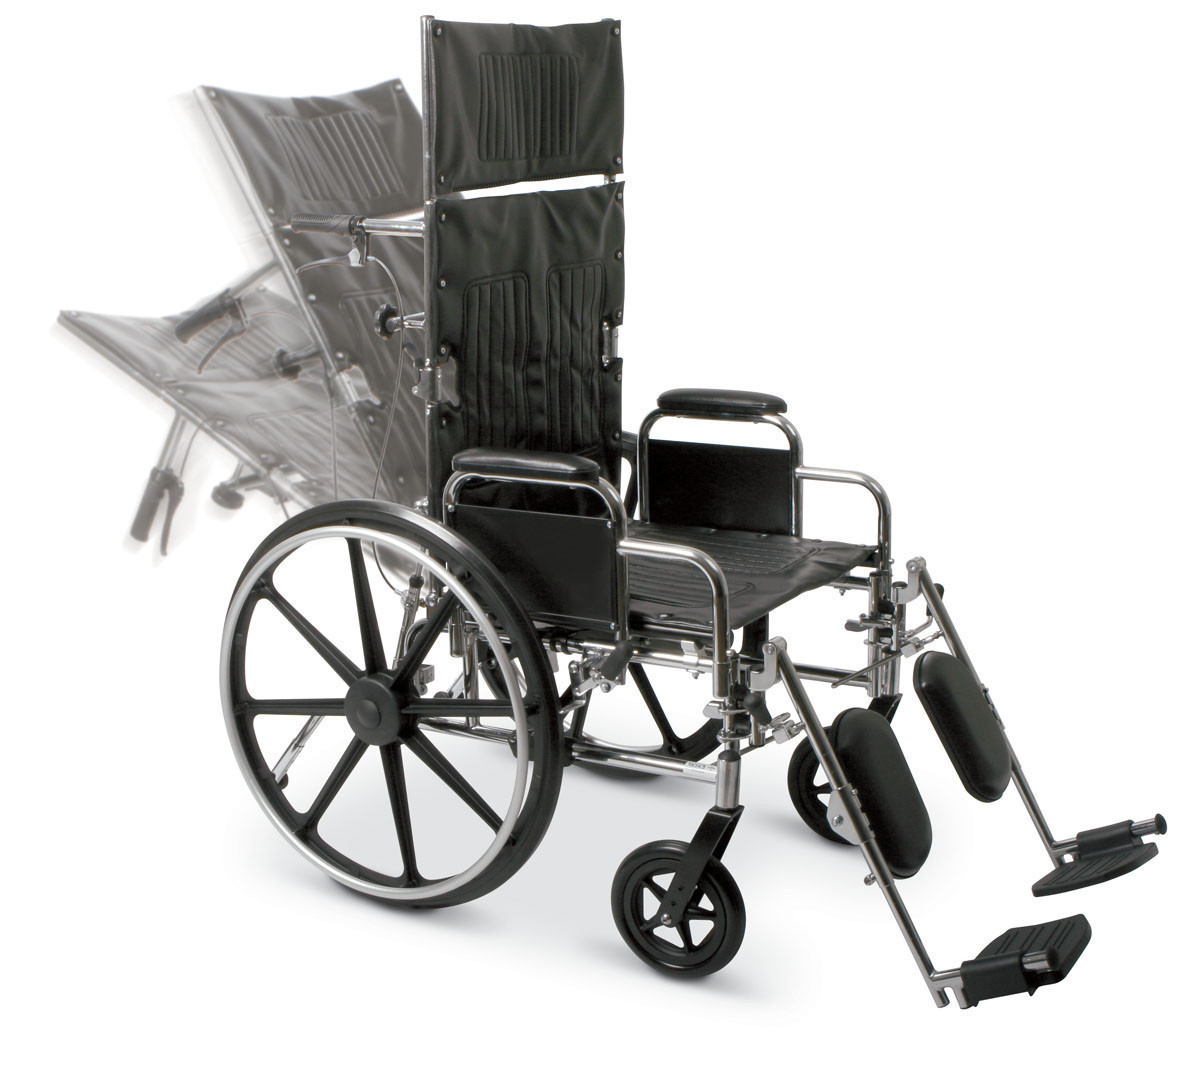 Wheel Chair Rentals Reclining Wheelchairs For Rent Wheelchair Rentals